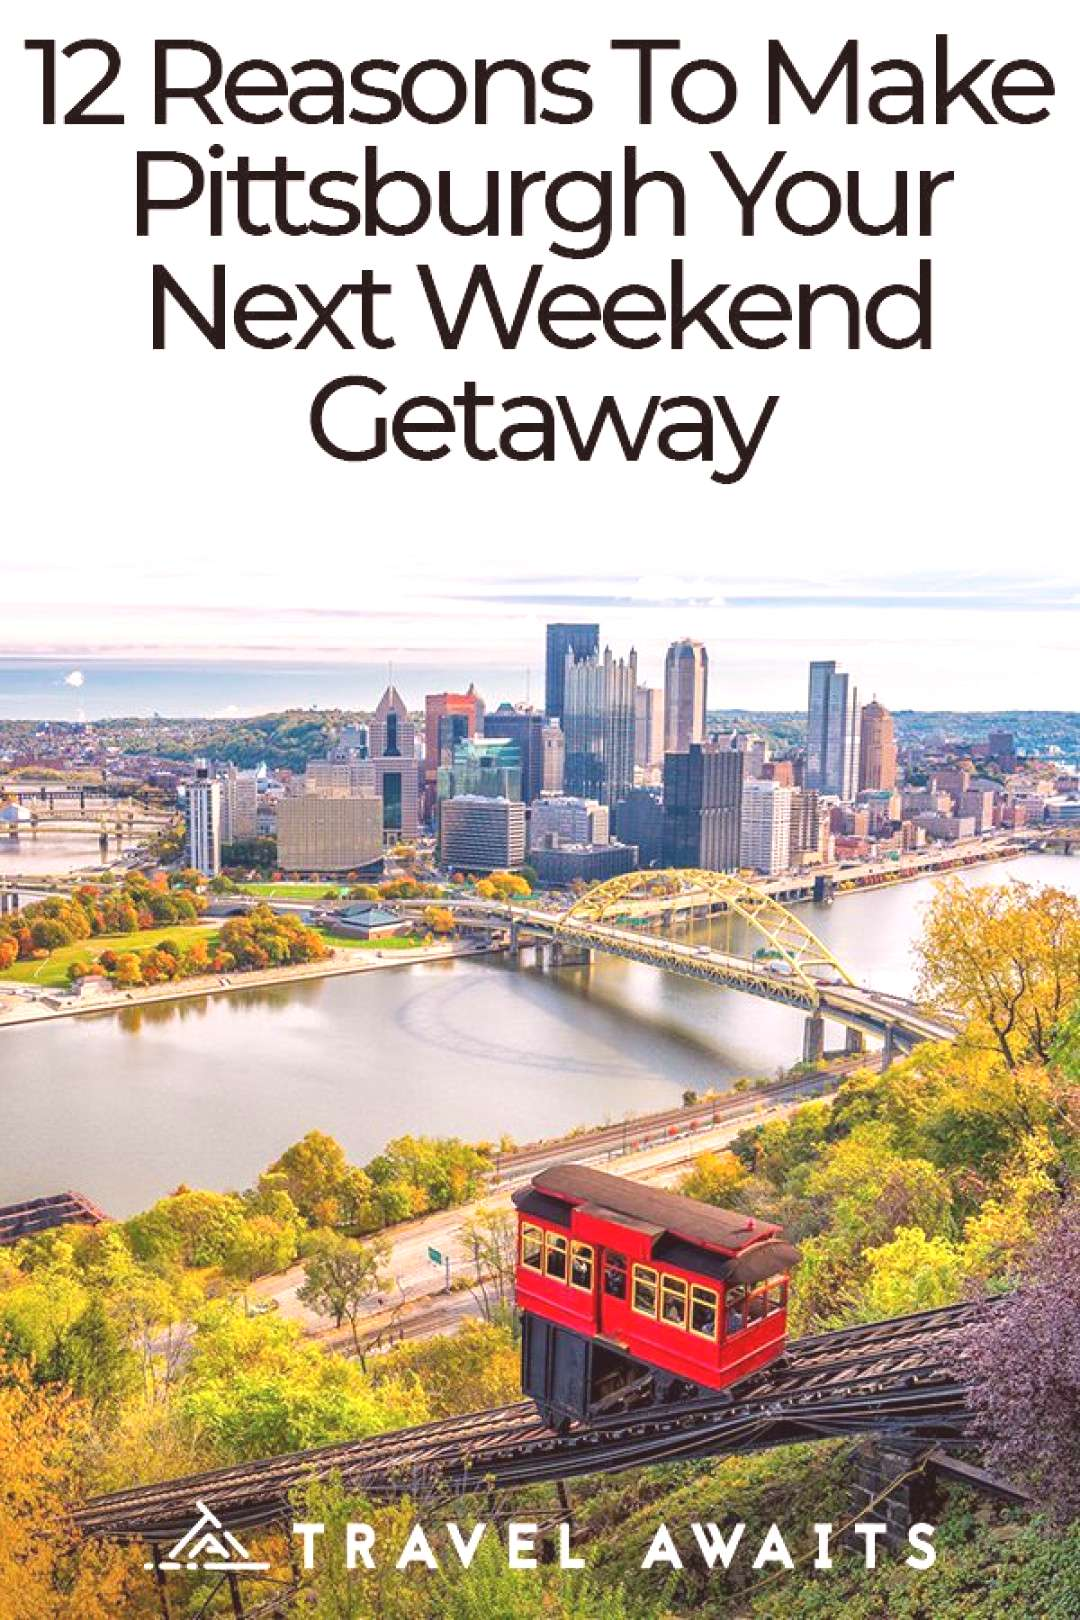 12 Reasons To Make Pittsburgh Your Next Weekend Getaway - 12 Reasons To Make Pittsburgh Your Next